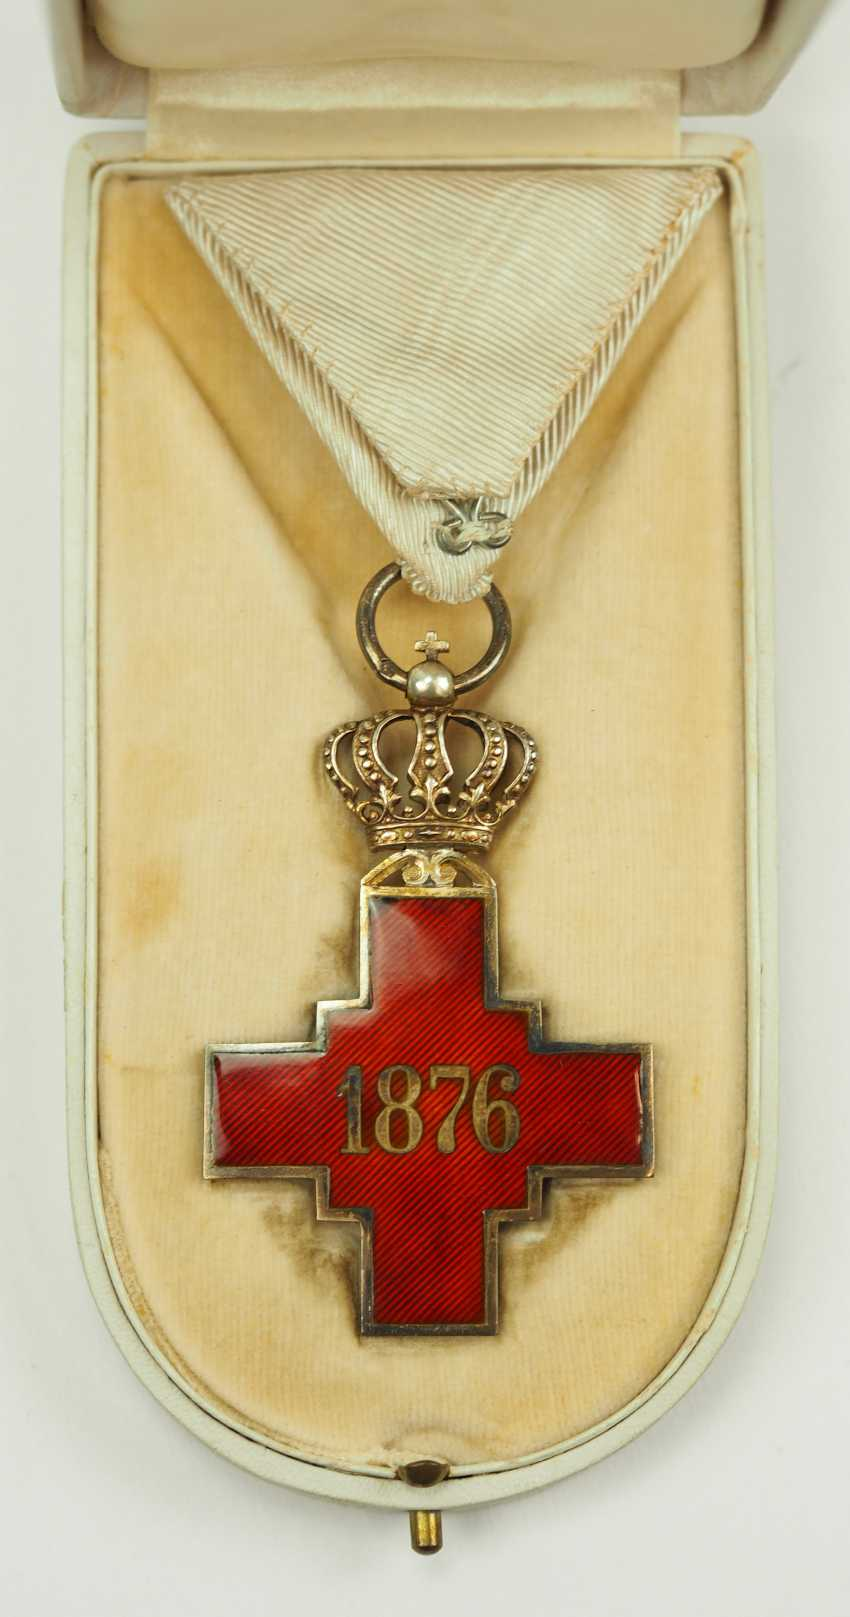 Serbia: order of the Red cross society of the Kingdom of Serbia, 2. Model (1882-1941), in a case. - photo 3